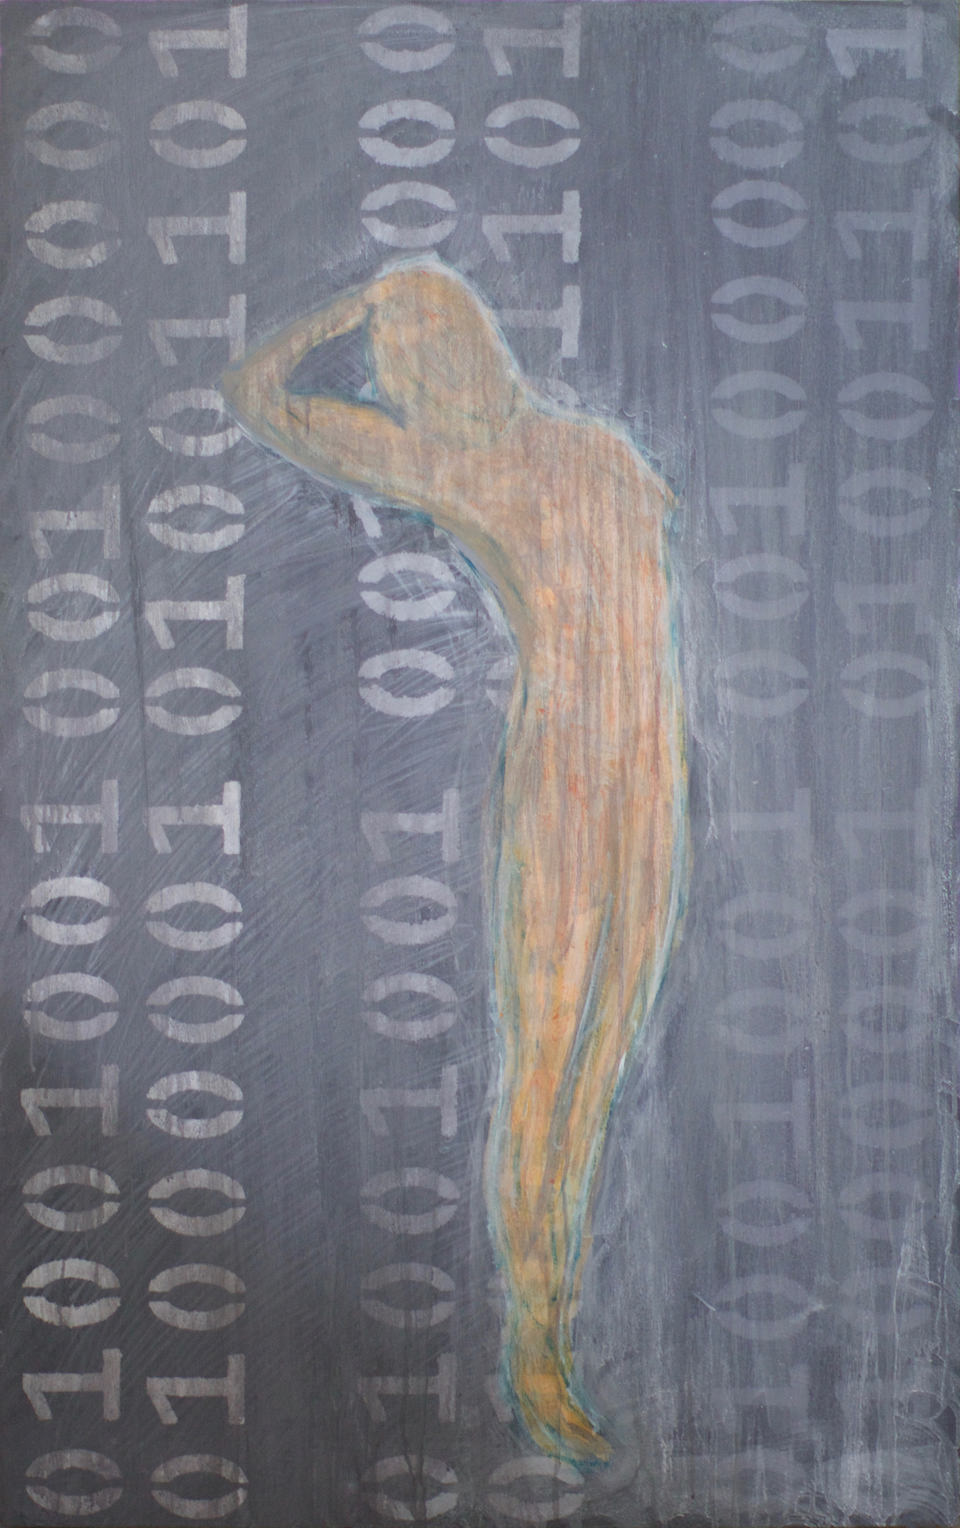 painting: I AM: Emerging from 1s and 0s by Roxanne Darling